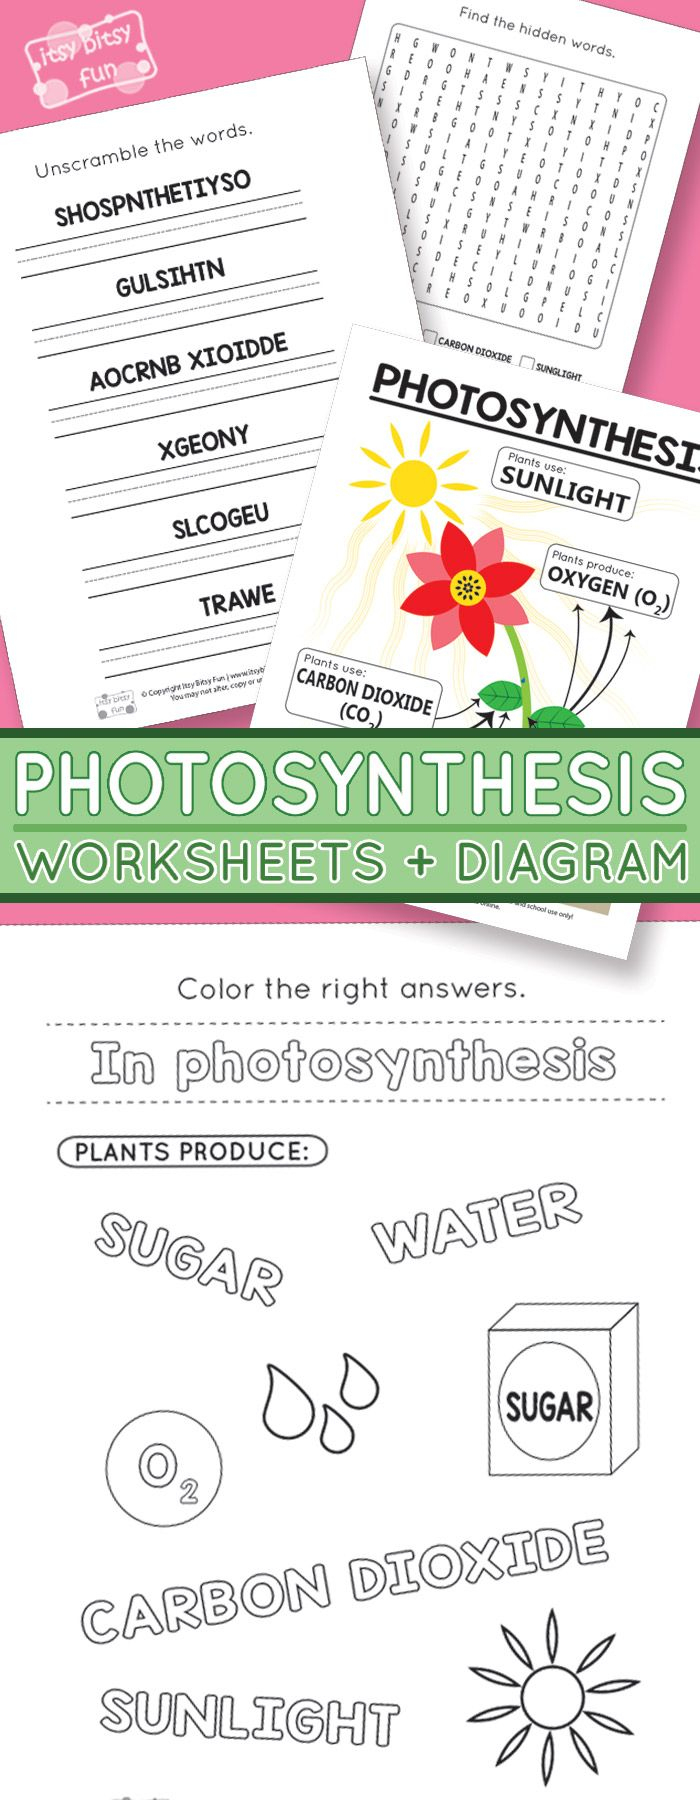 Photosynthesis Worksheets For Kids | Homeschooling Ideas | Free Printable Photosynthesis Worksheets